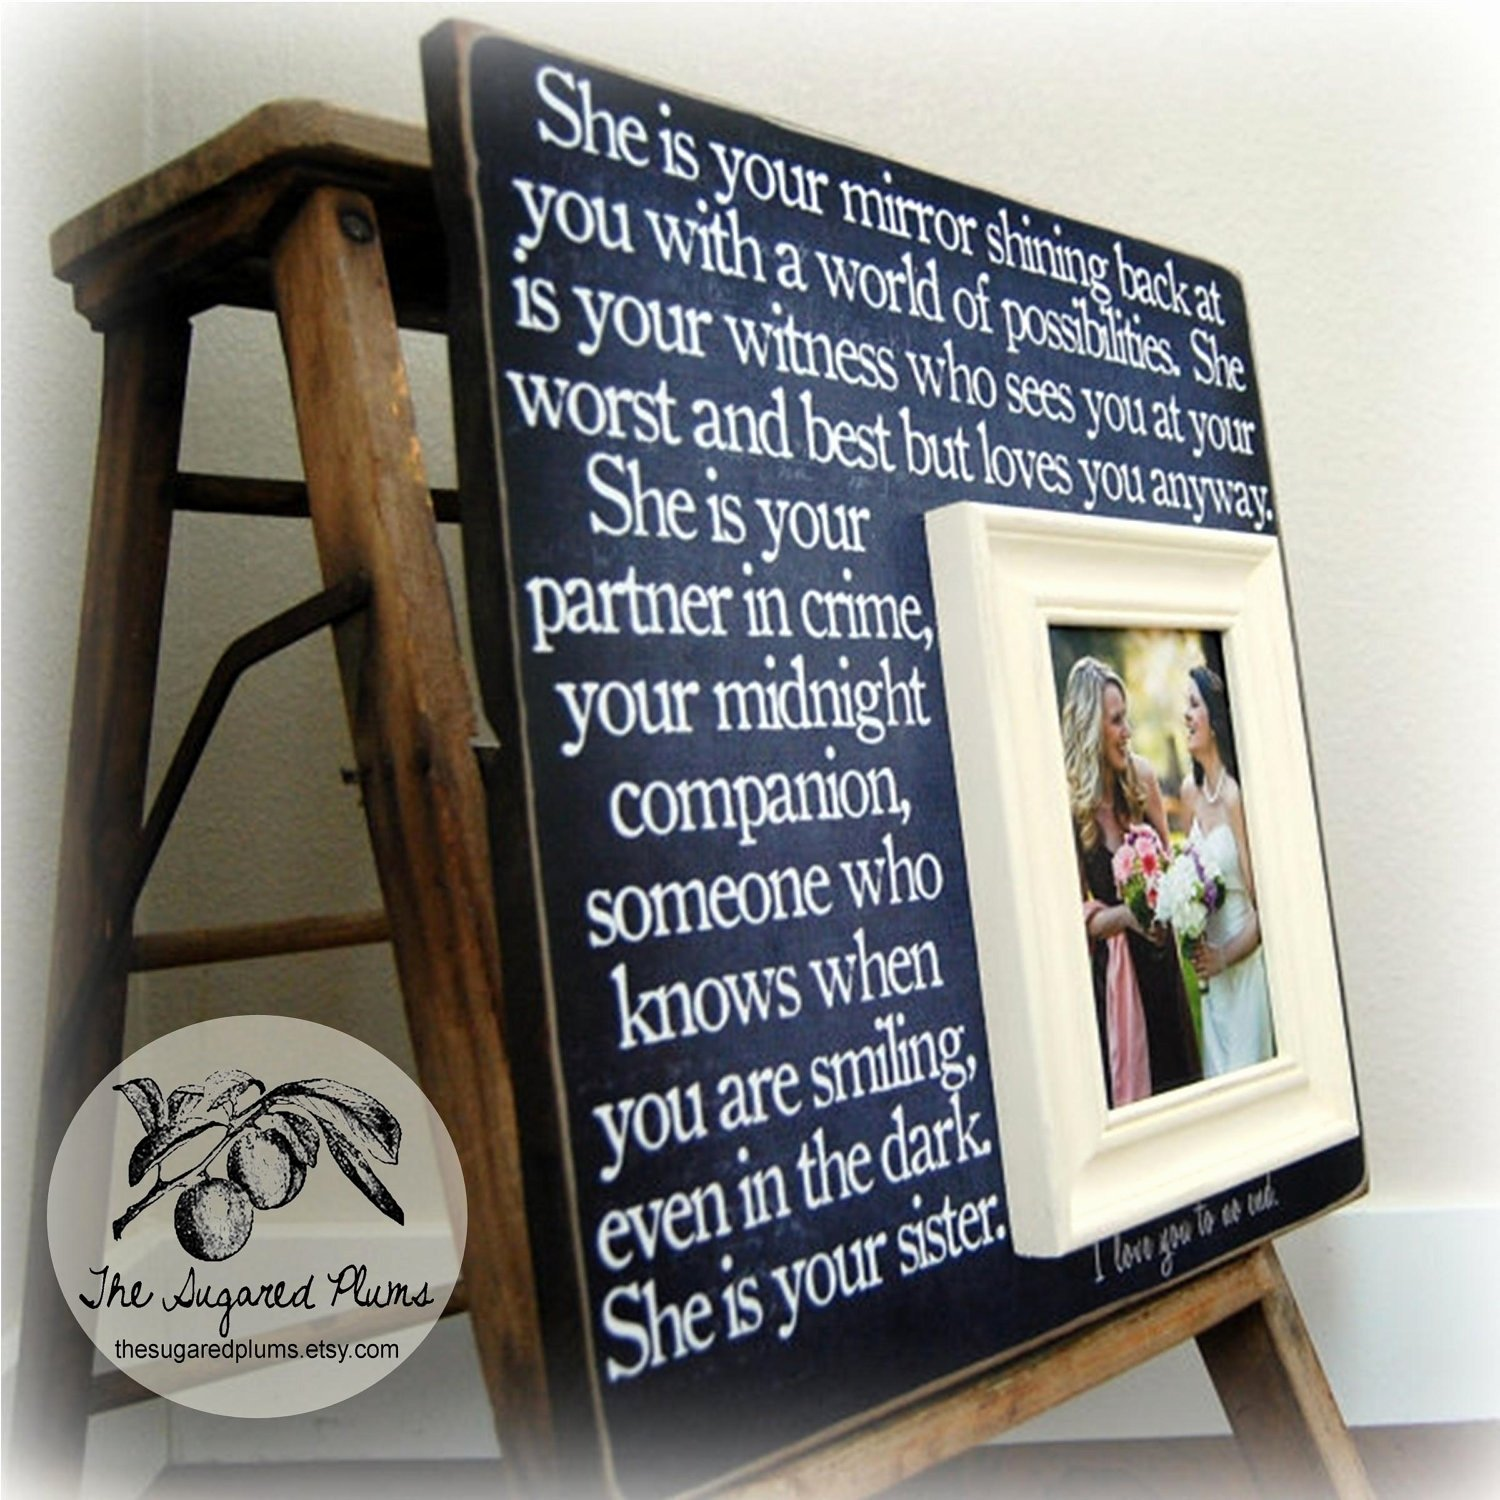 10 Beautiful Maid Of Honor Gift To Bride Ideas 50 awesome gift for bride from maid of honor on wedding day 2021